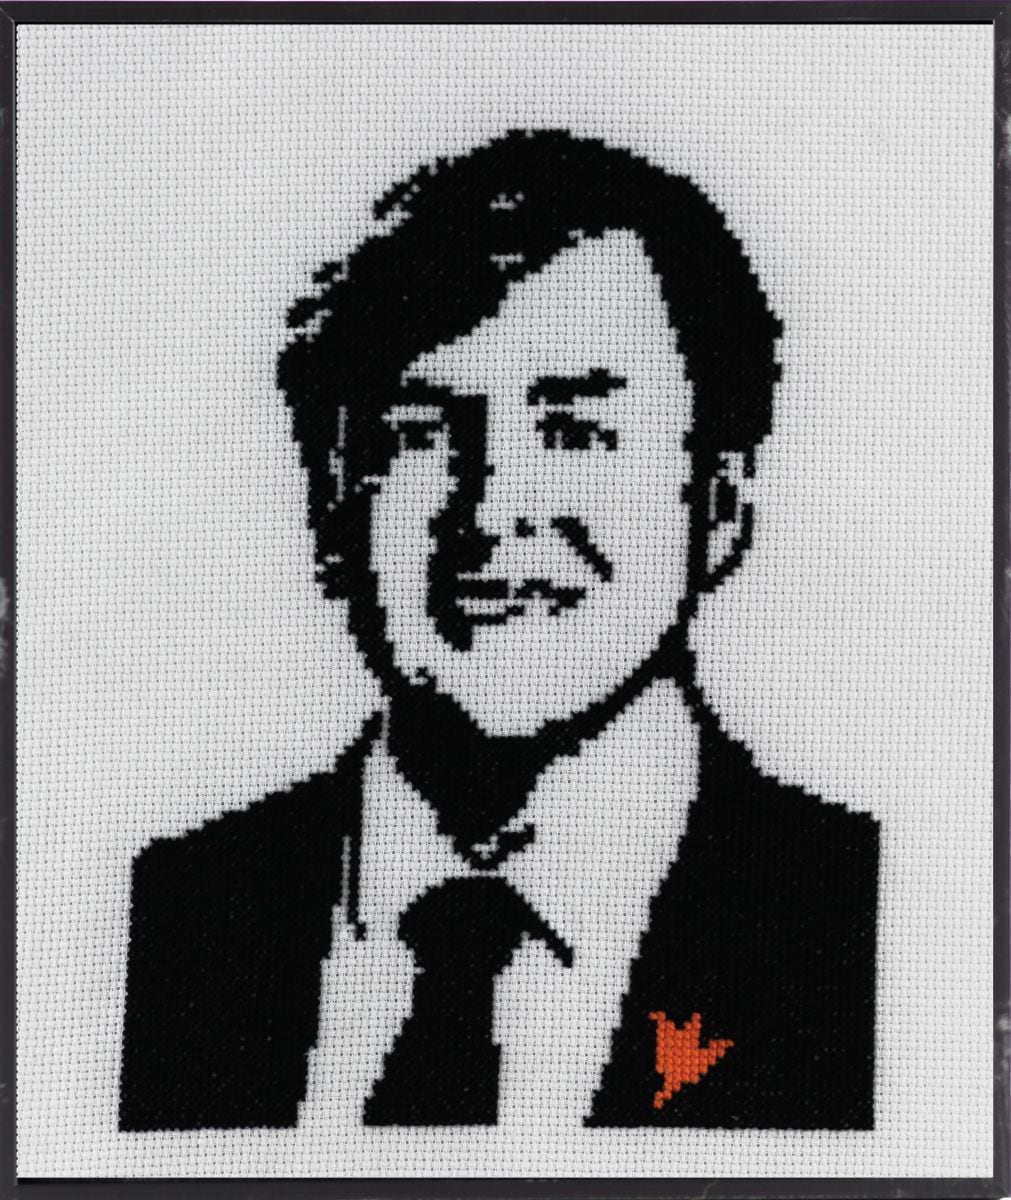 portrait king willemalexander embroidery kit